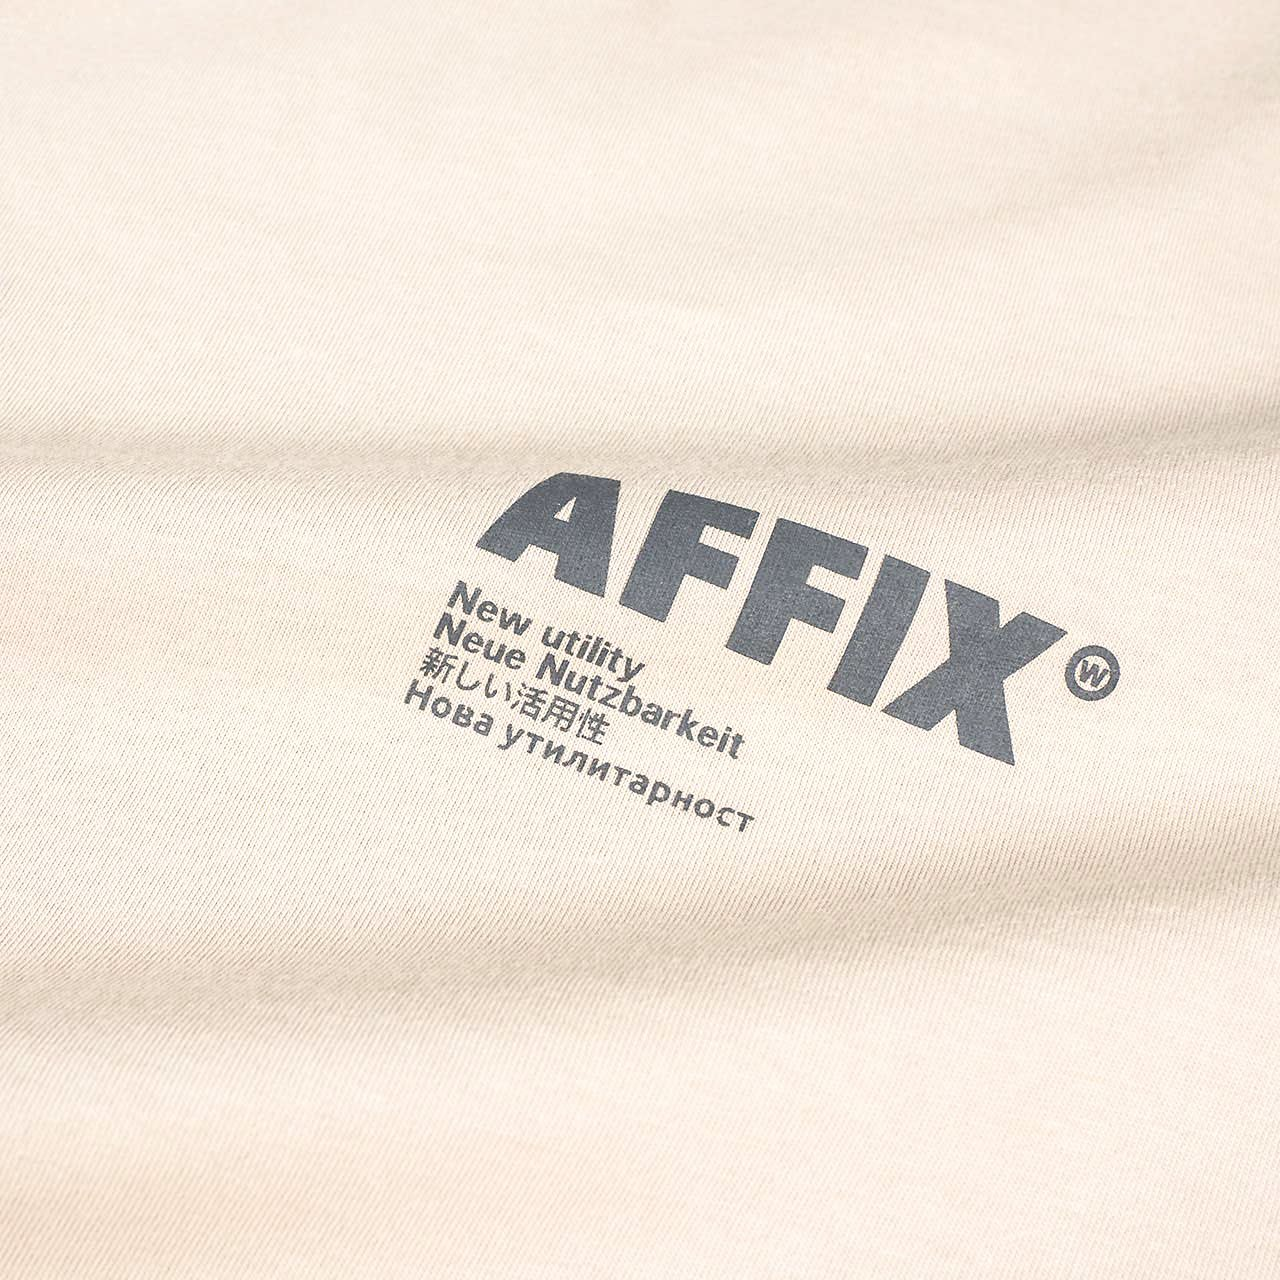 AFFIX WORKS bei a.plus